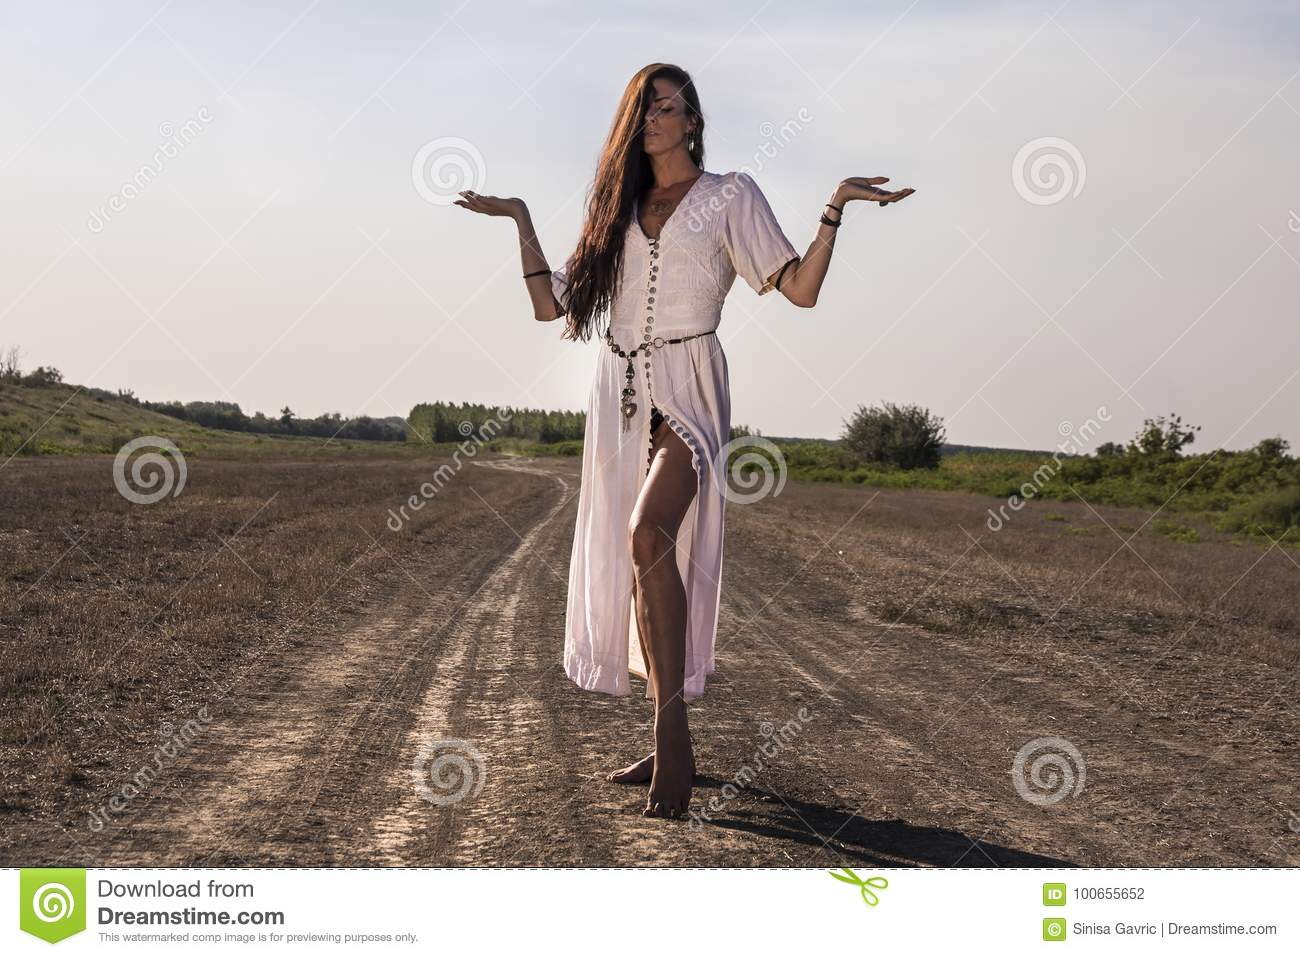 Woman on the dirty road posing